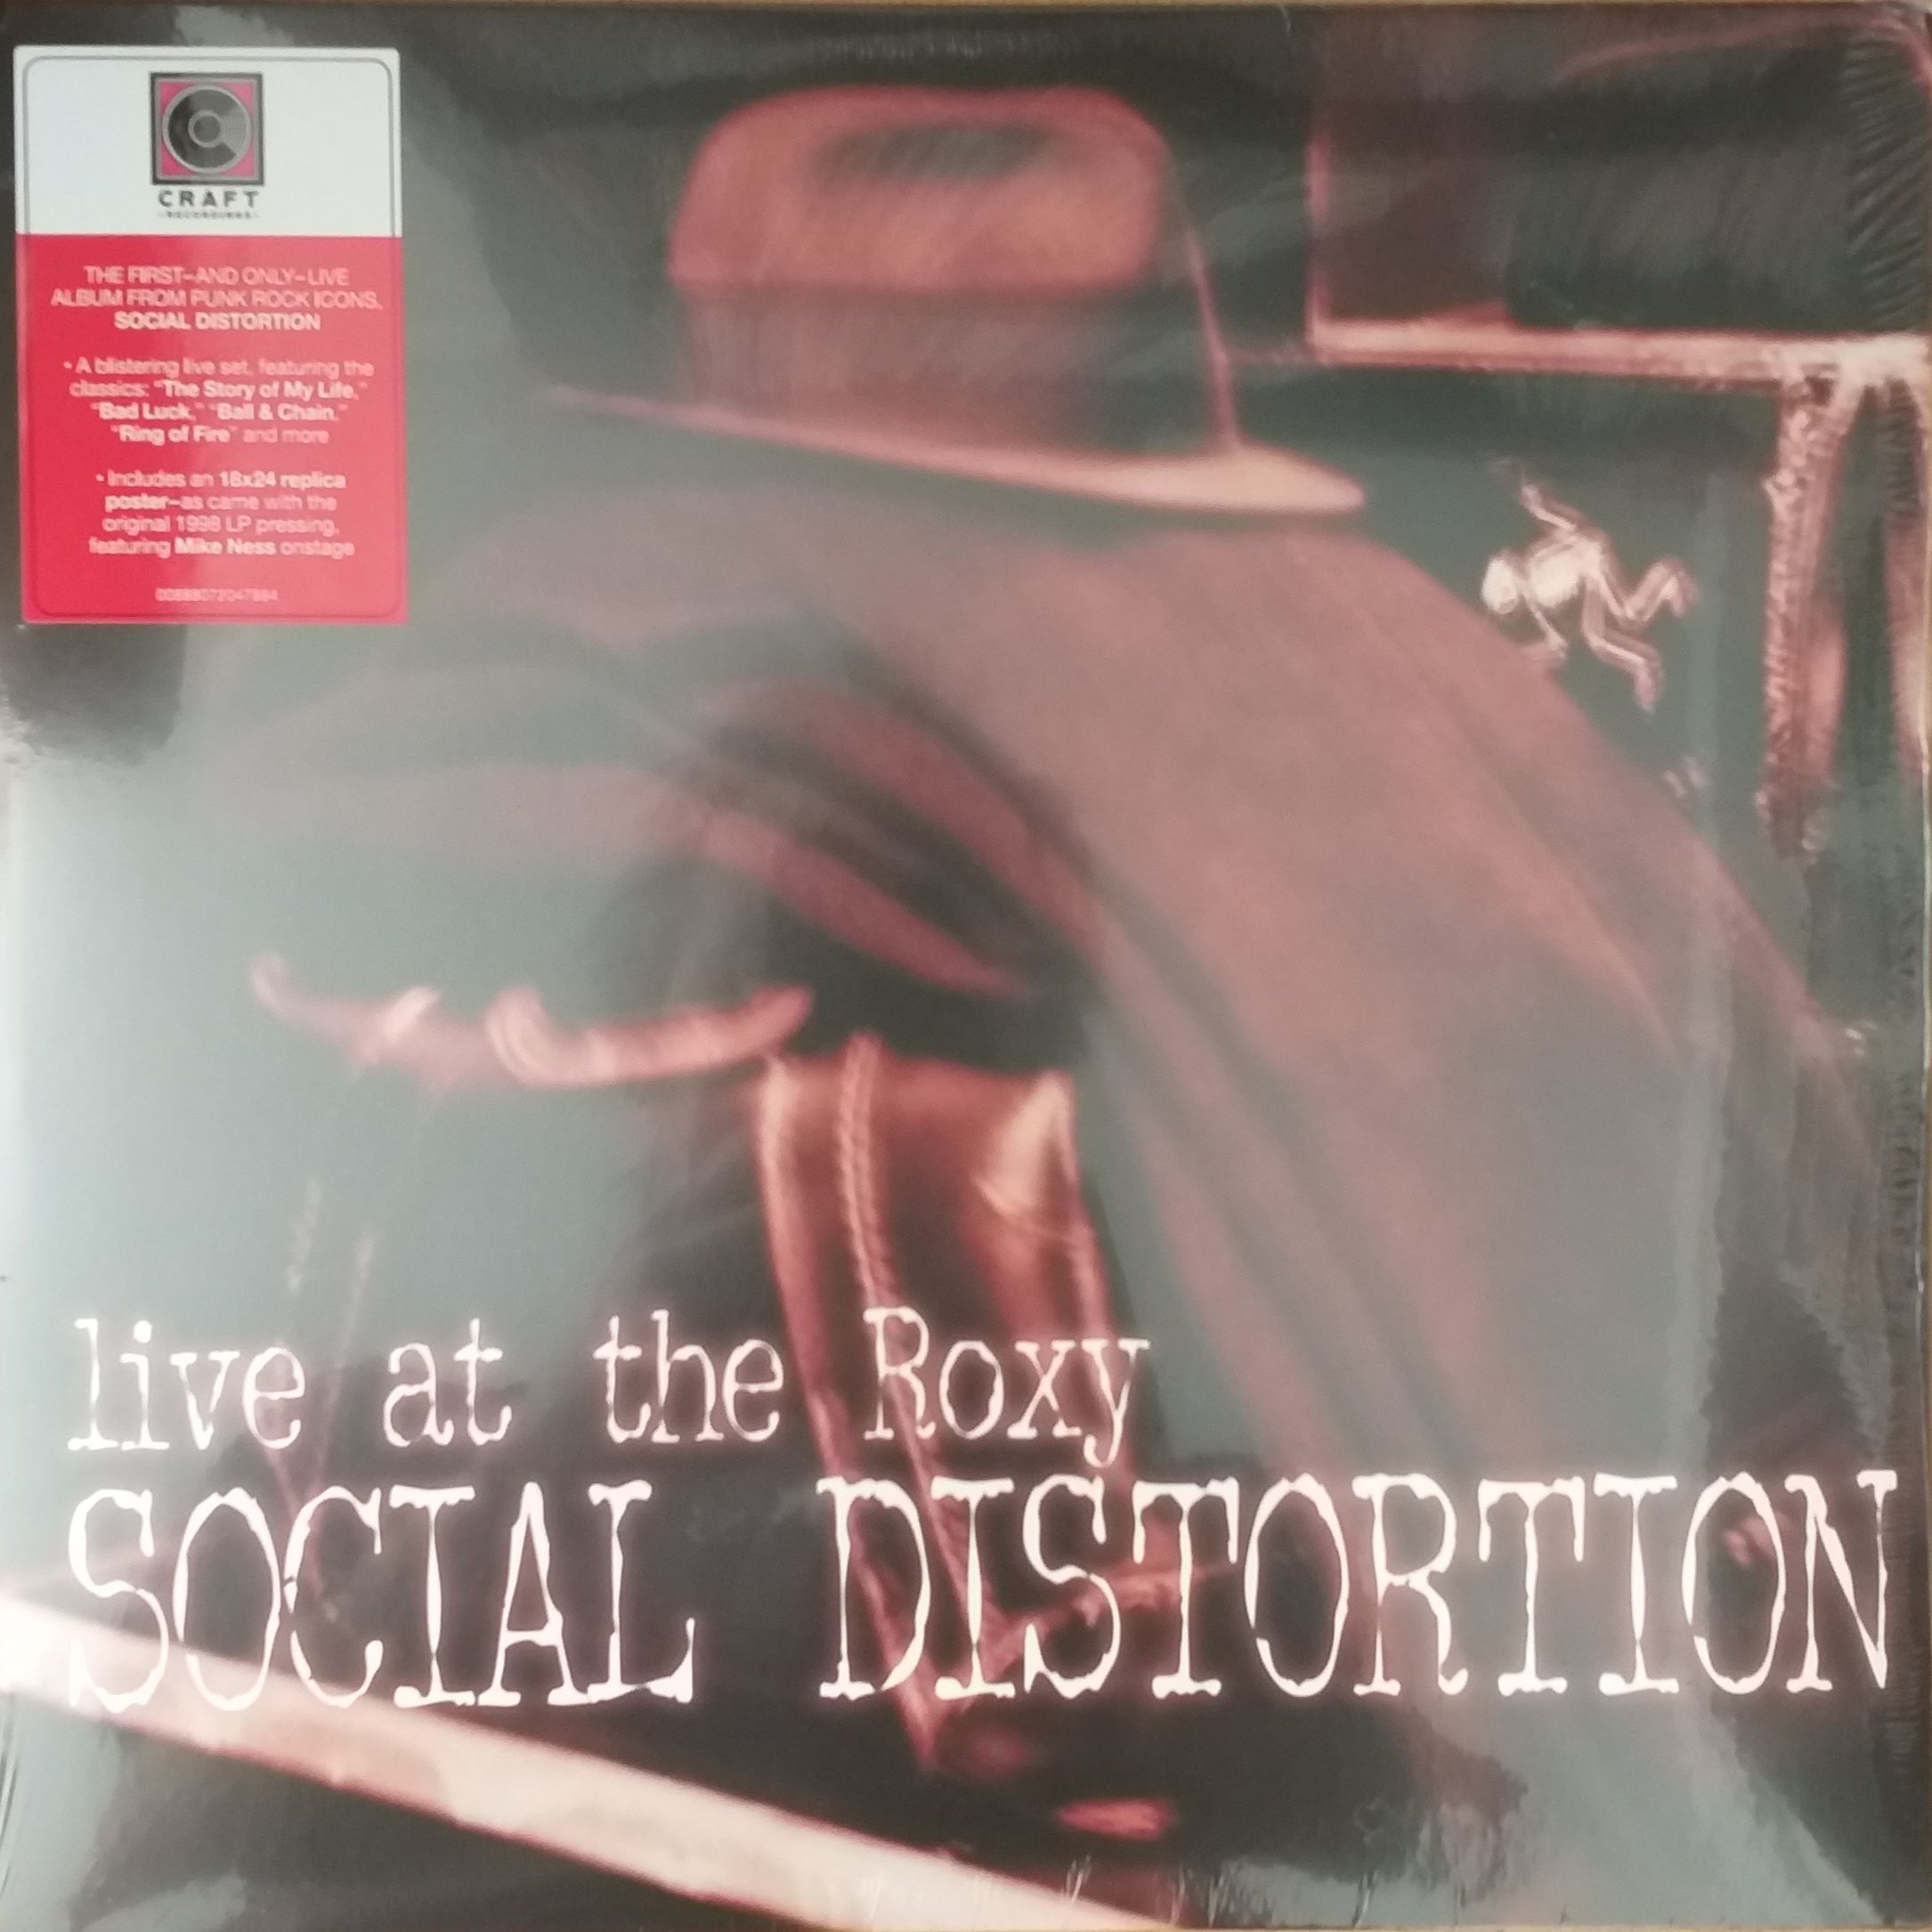 Social distortion  Live at the roxy LP undefined